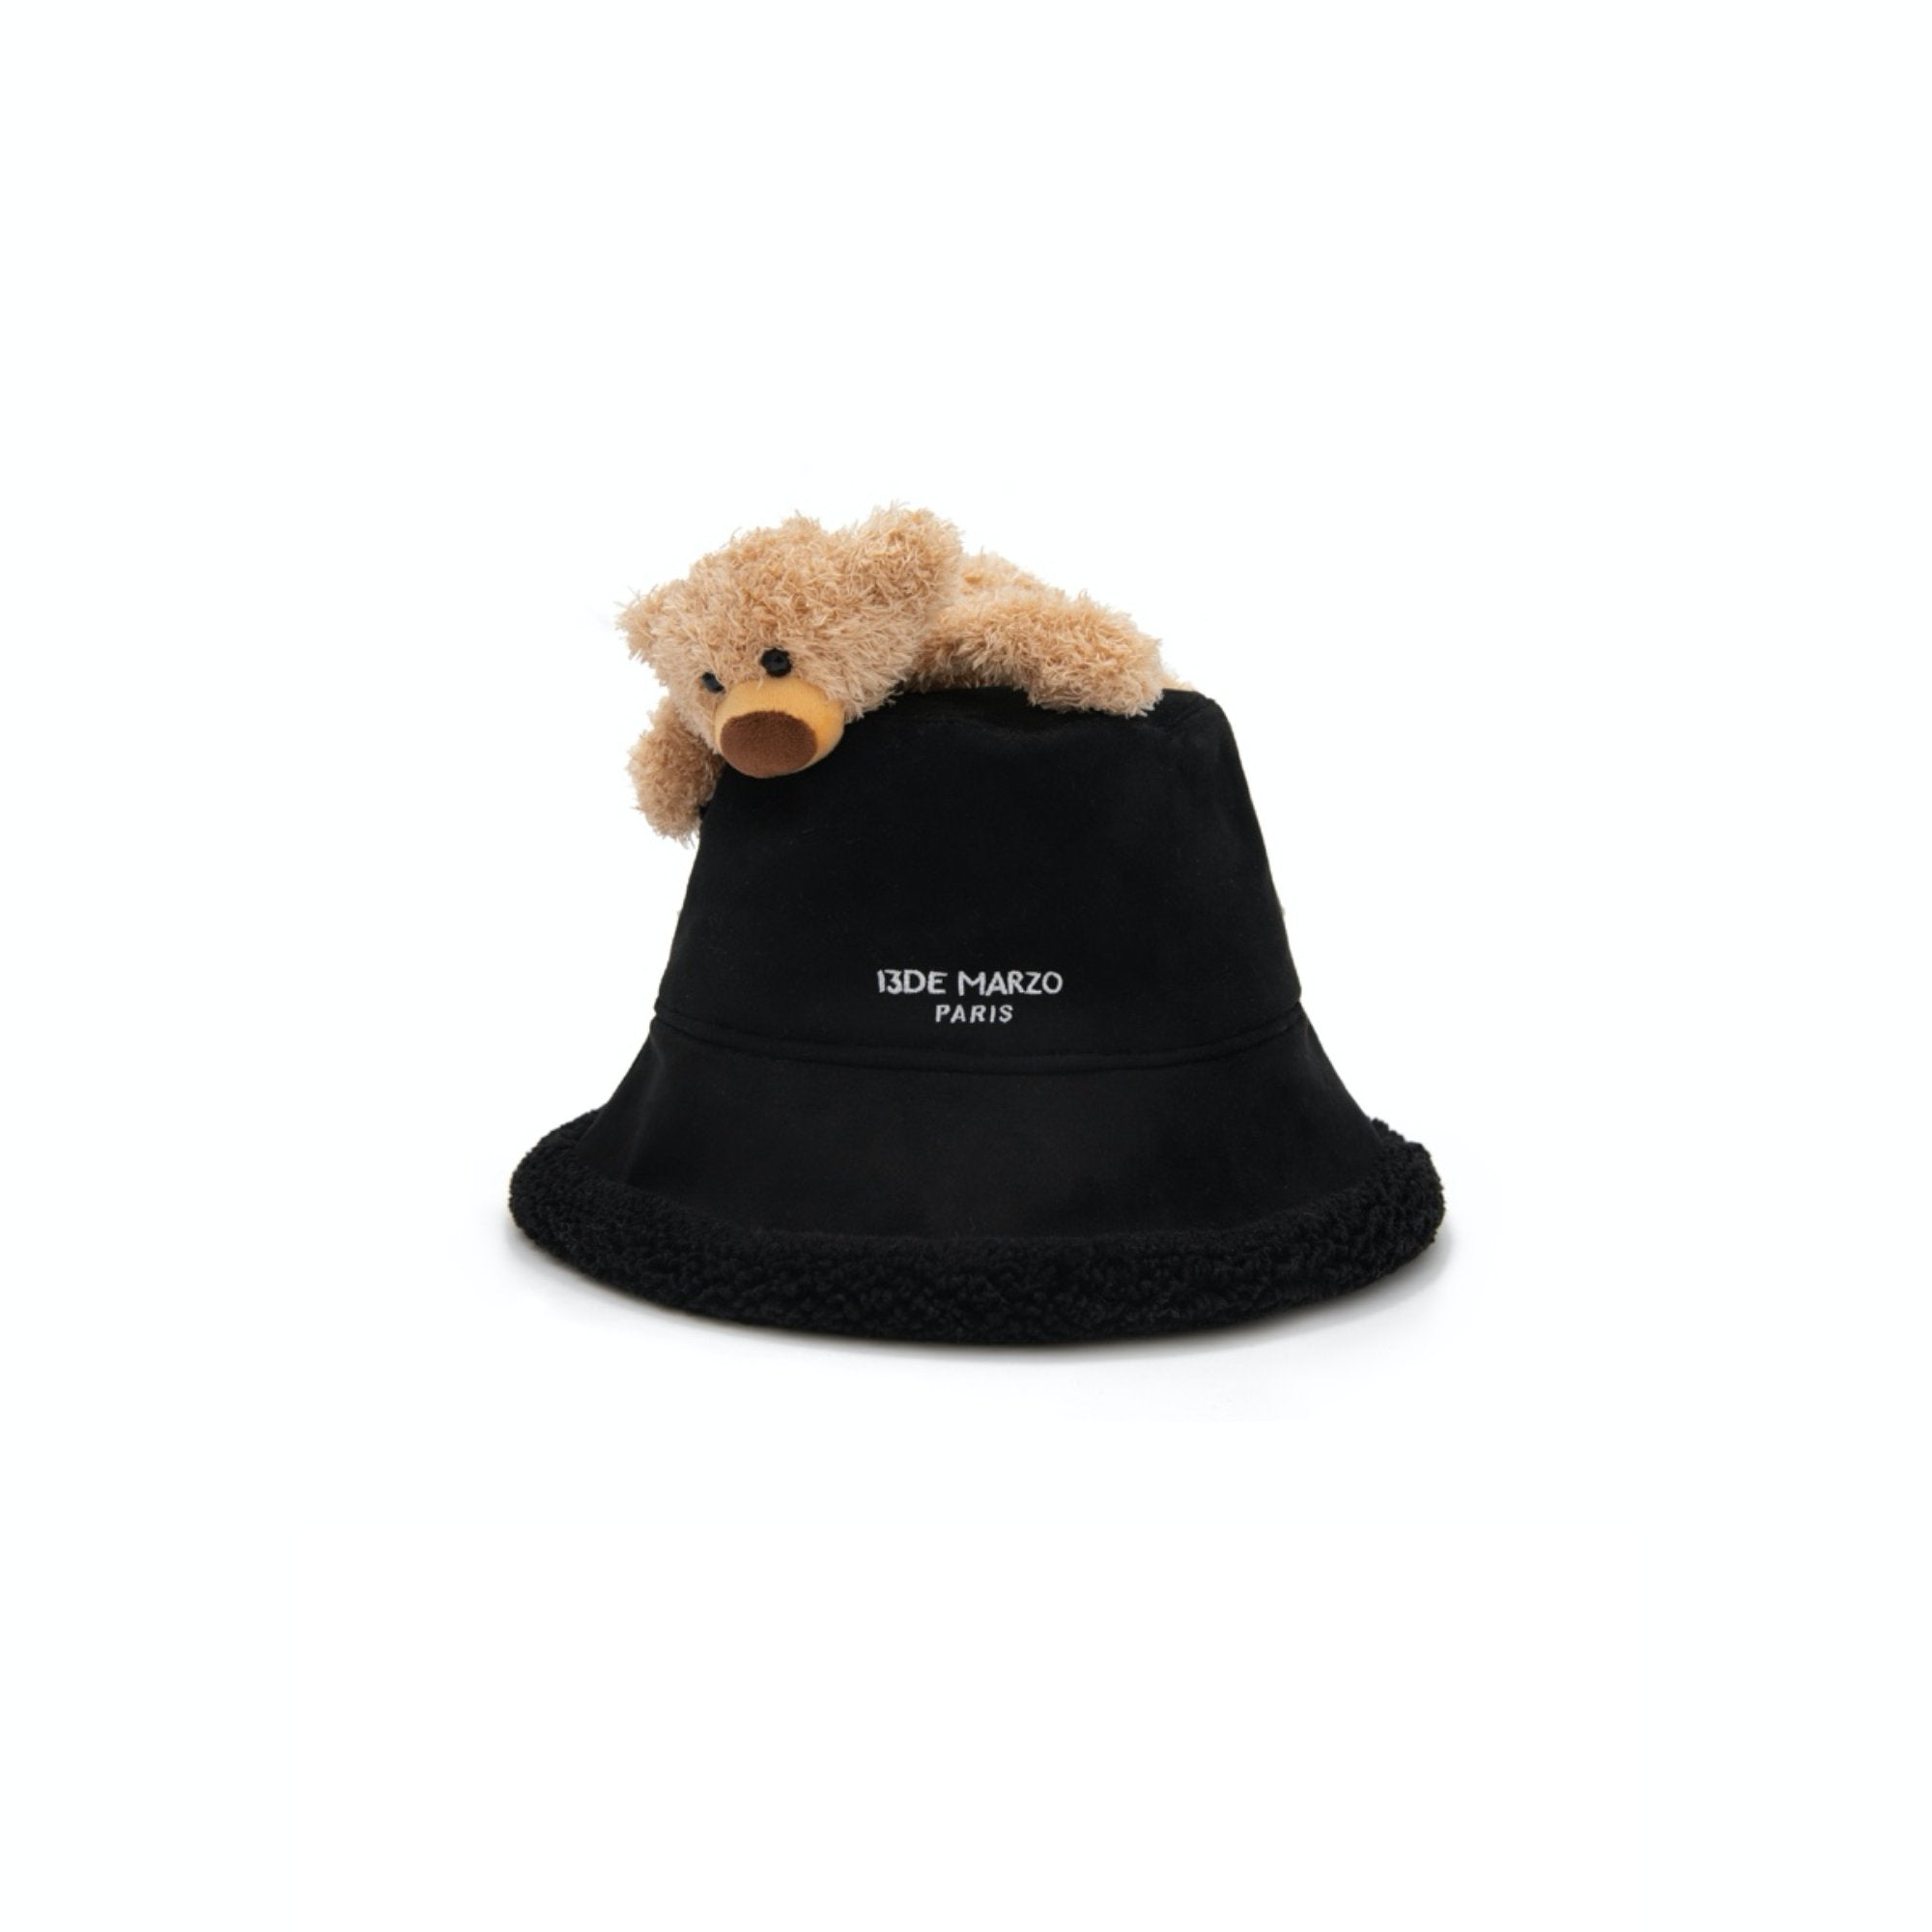 13 DE MARZO Lazy Teddy Bear Both-side Bucket Hat Black | MADA IN CHINA